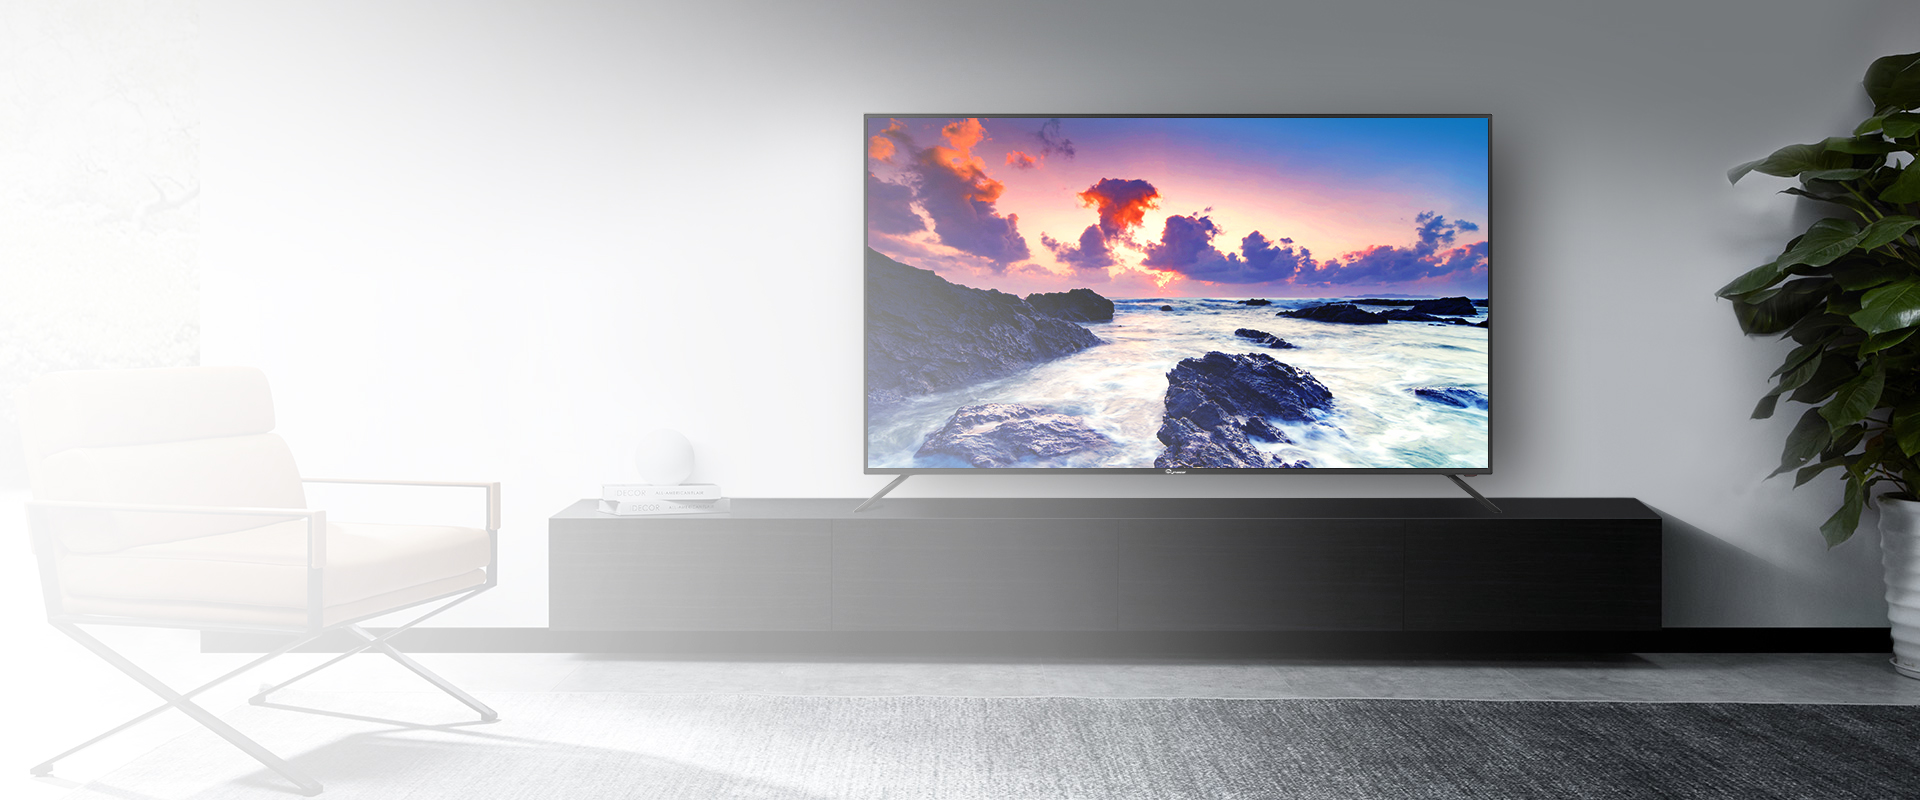 tv-product-banner